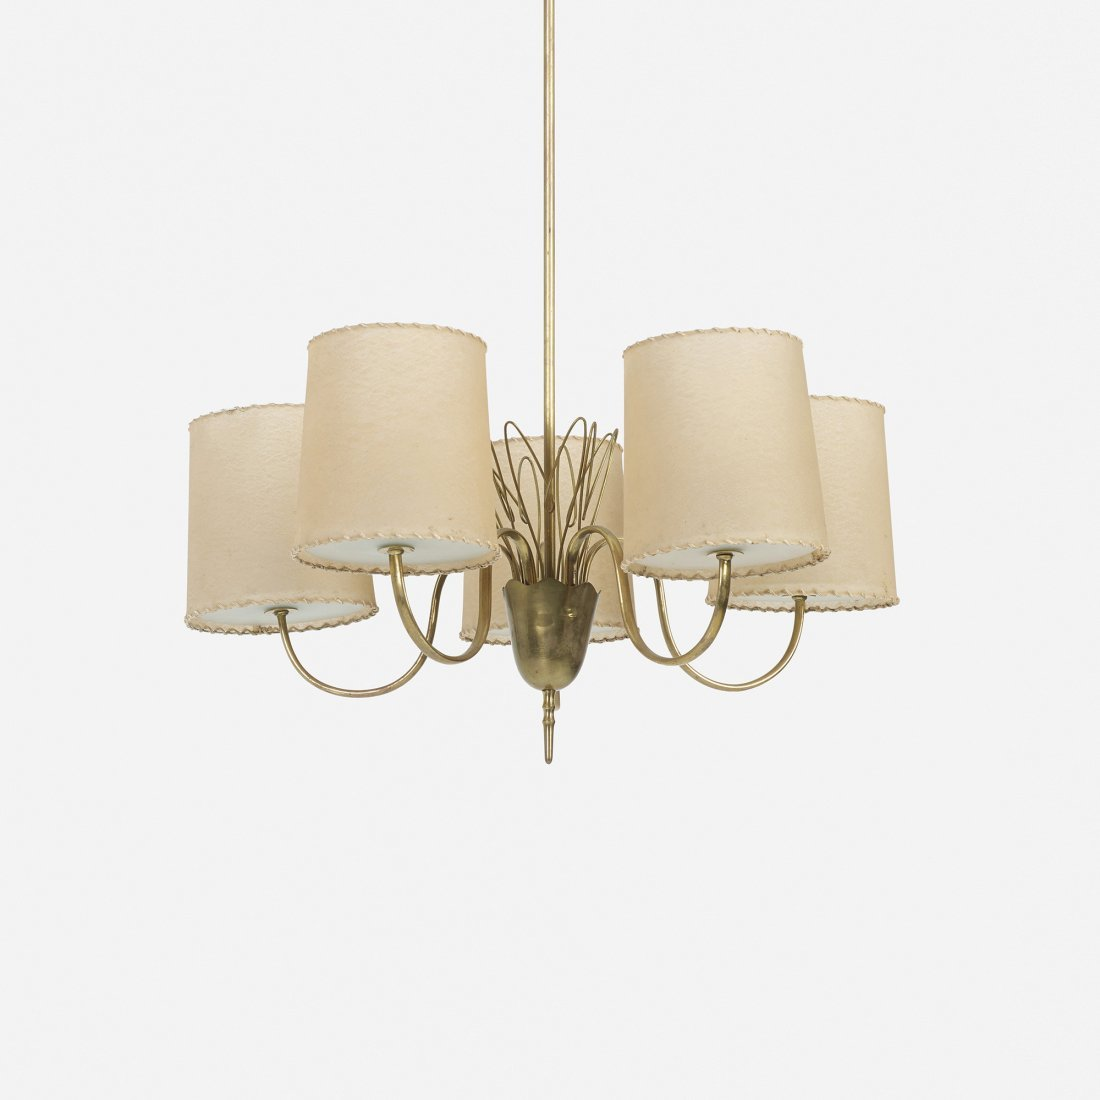 Paavo Tynell chandelier, model 9032